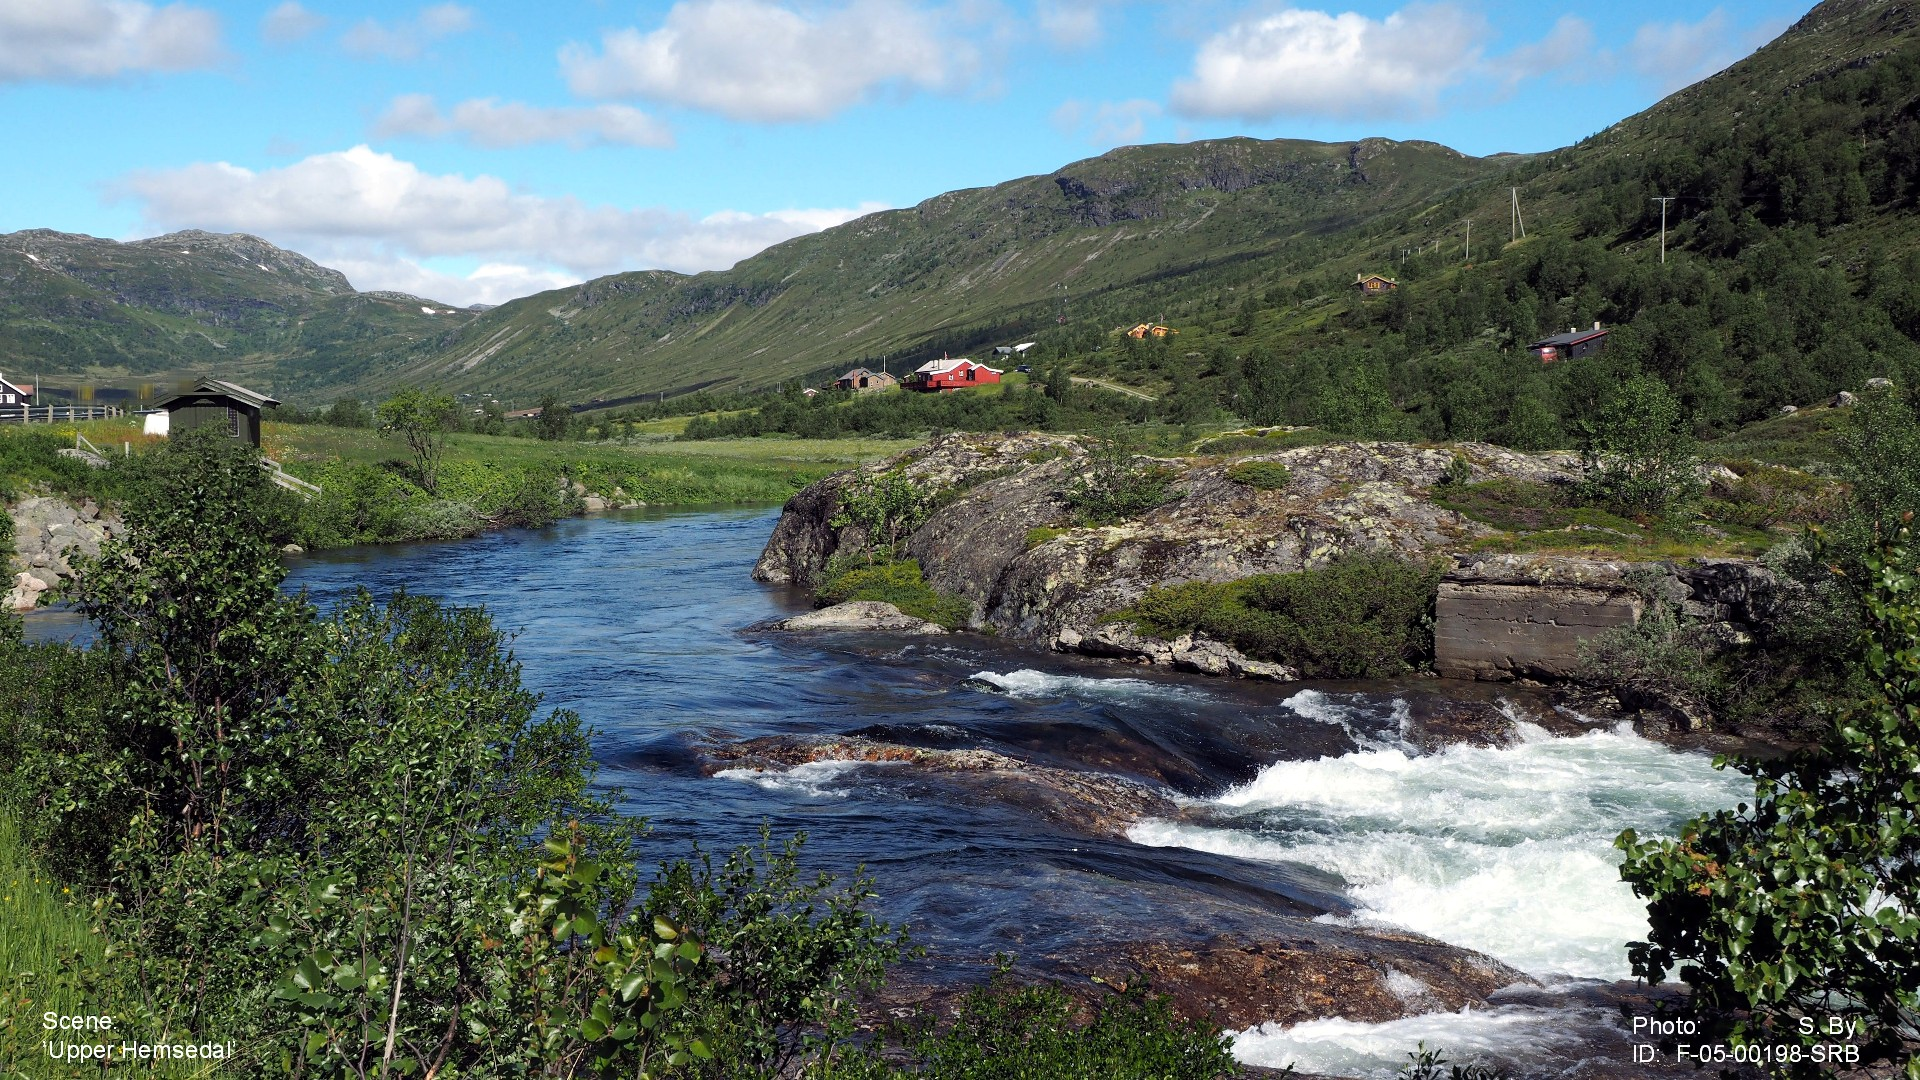 ... Tuv, behind us and climbed up into the upper parts of Hemsedal valley.  The sun is shining from a blue sky and the nature is unforgettable.